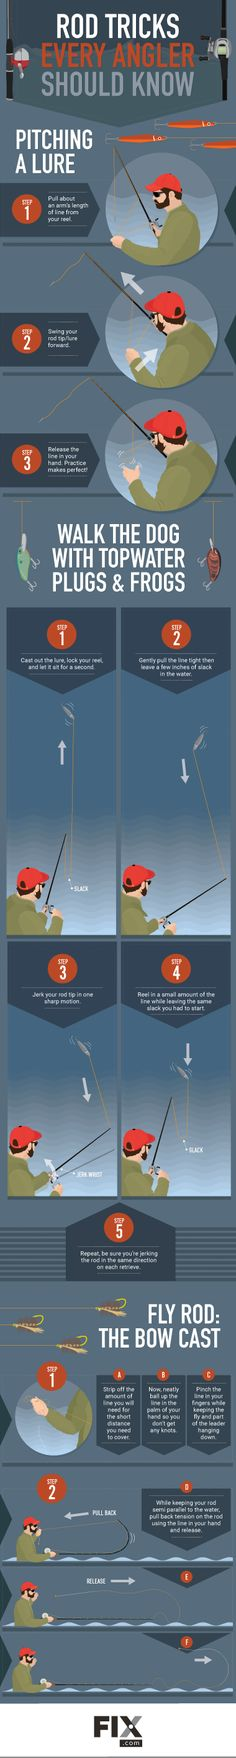 Tricks Every Angler Should Know: Tips for Tight Situations Sometimes the fish are hiding in areas where it's tricky to cast, like around weeds and rocks. Practice these rod tricks to improve your casting accuracy!Improved Improved may refer to: Bass Fishing Tips, Crappie Fishing, Fishing Knots, Gone Fishing, Best Fishing, Kayak Fishing, Fishing Stuff, Fishing Tricks, Catfish Fishing